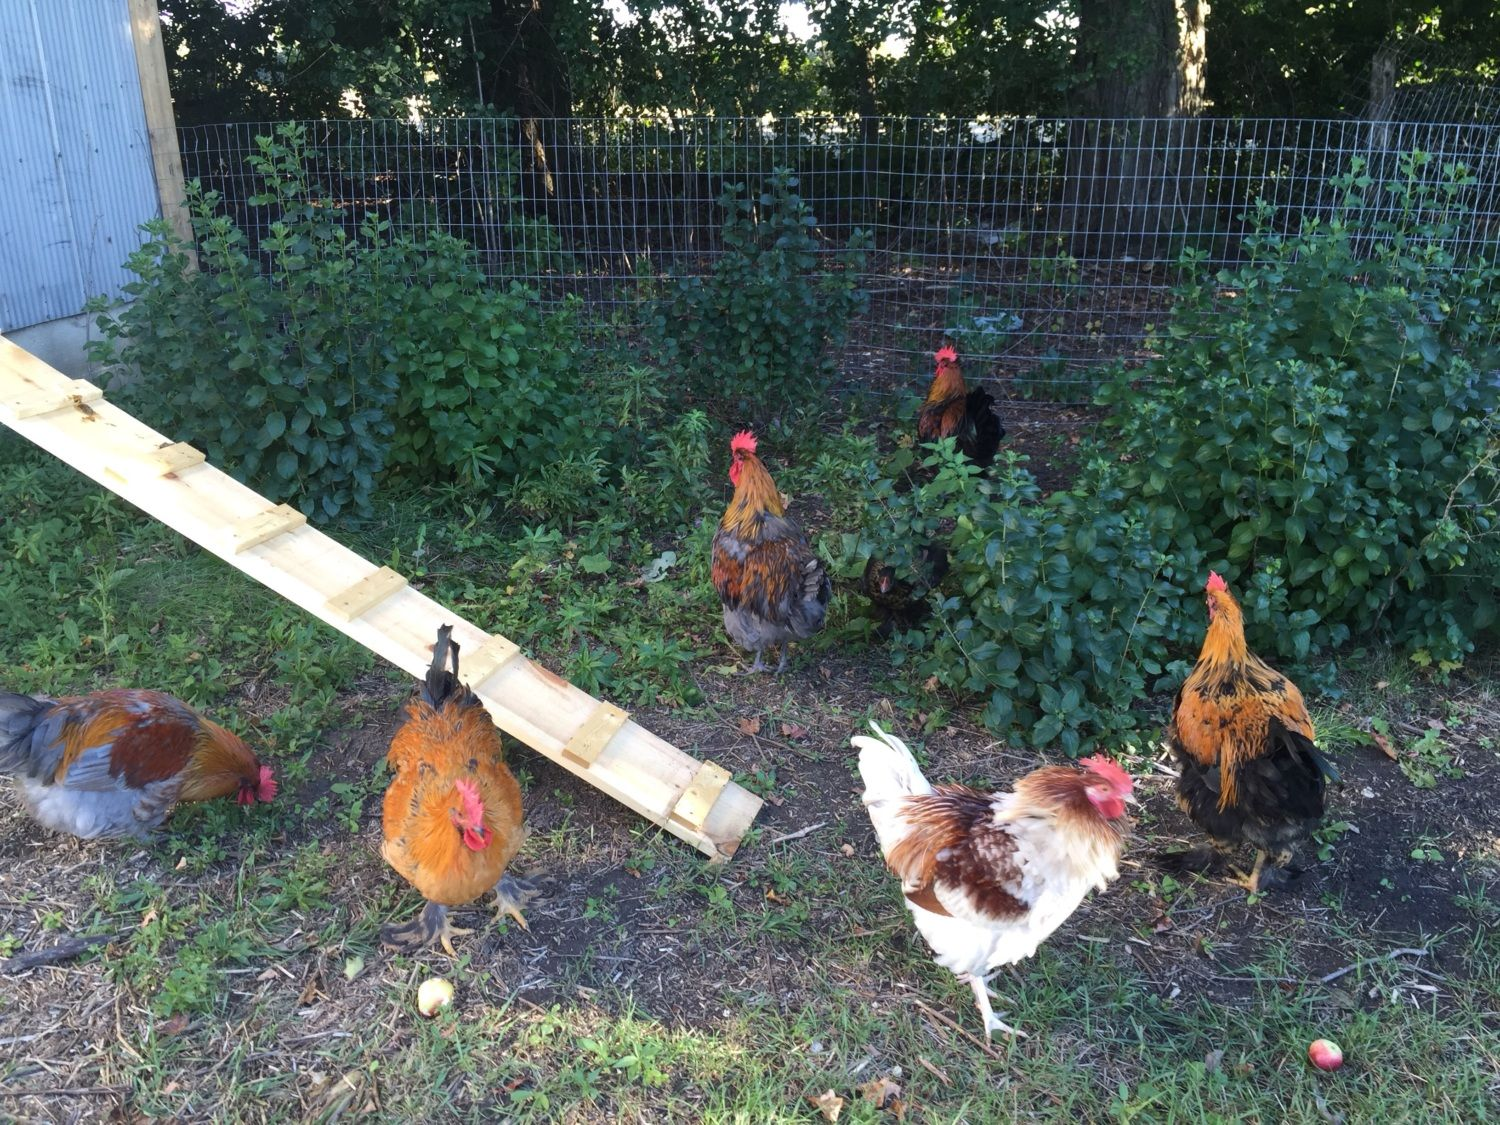 The roosters checking out the roofless run